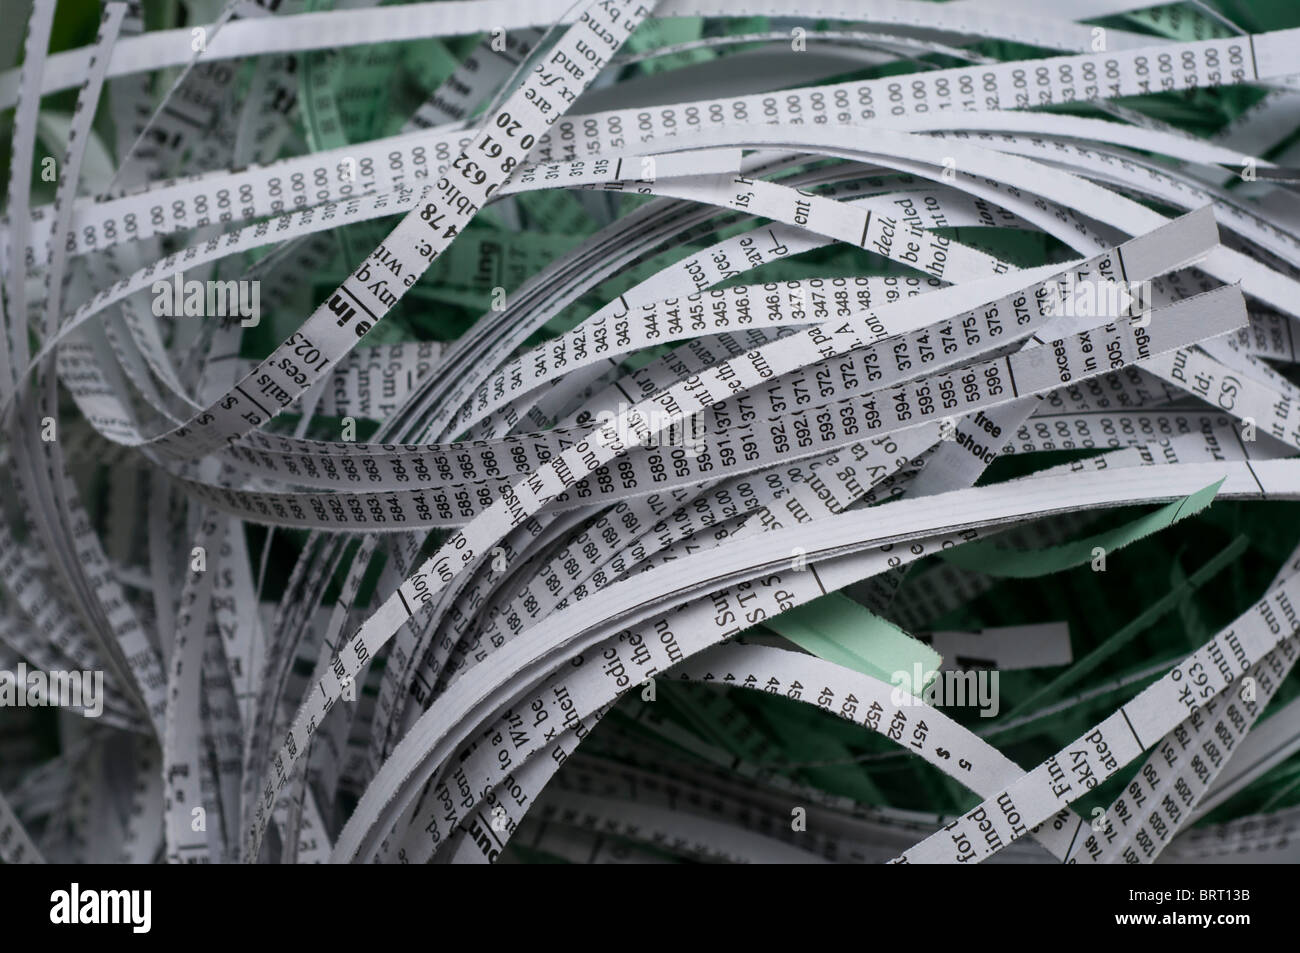 Shredded documents - Stock Image